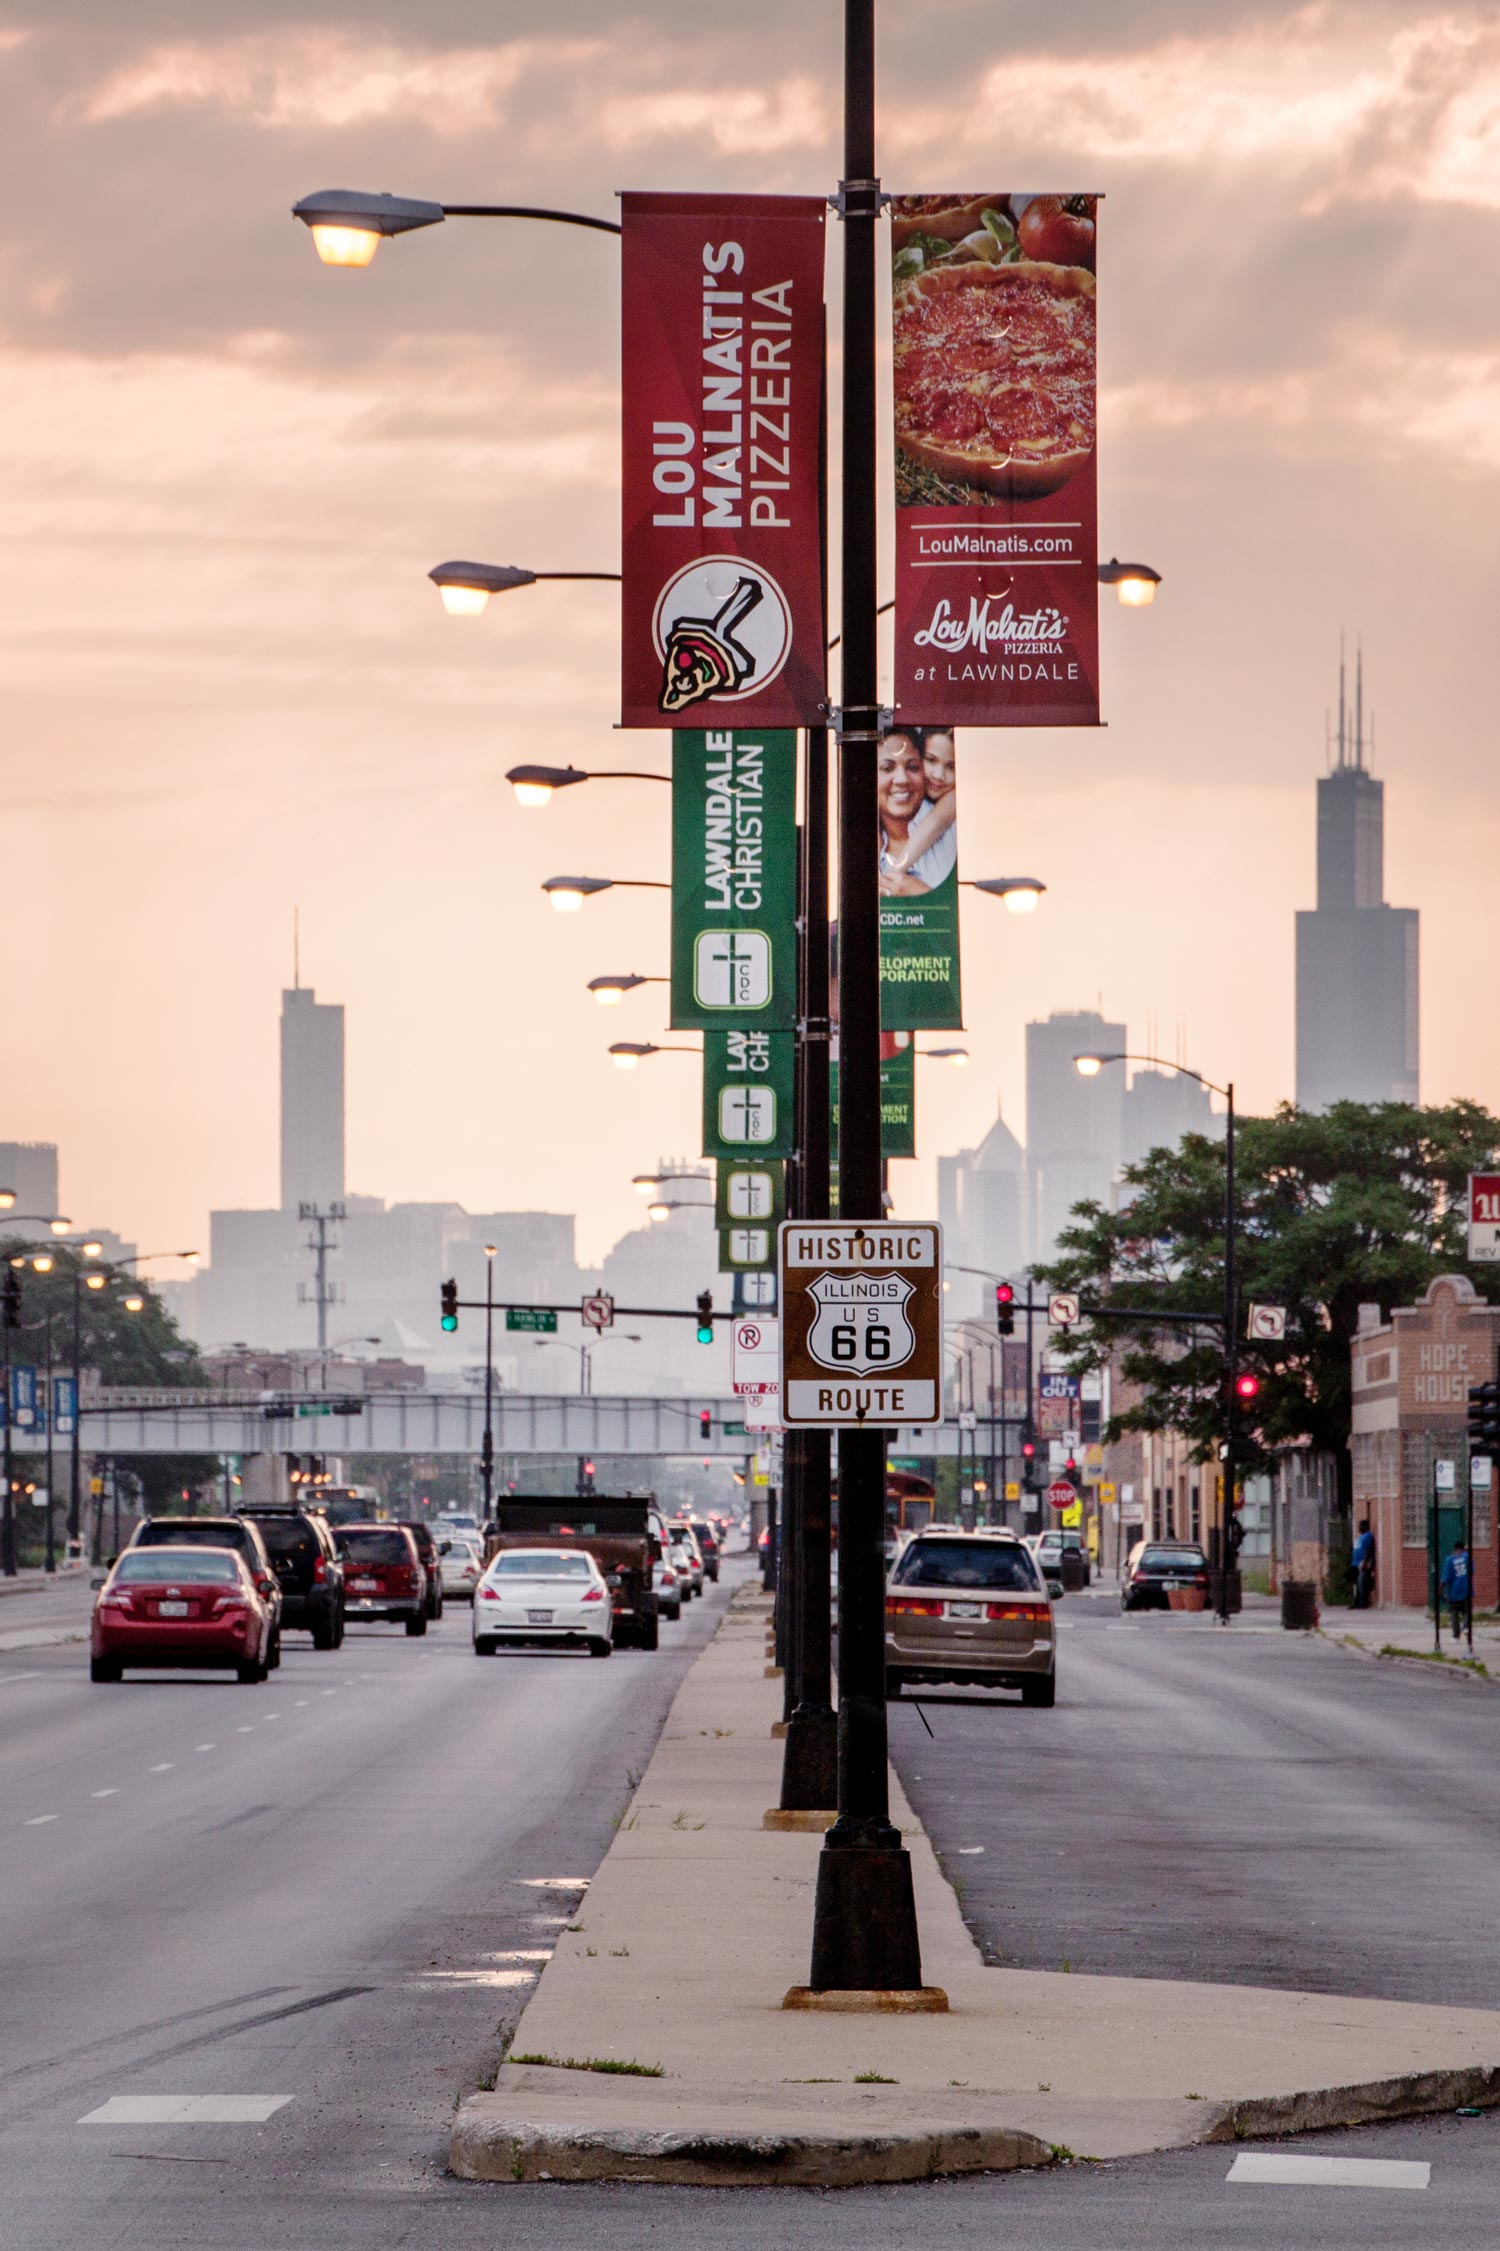 Lawndale Christian street banners looking down Ogden Ave towards the Chicago skyline.Image copyright Jeff Miller, HellothisisJeff Design LLC